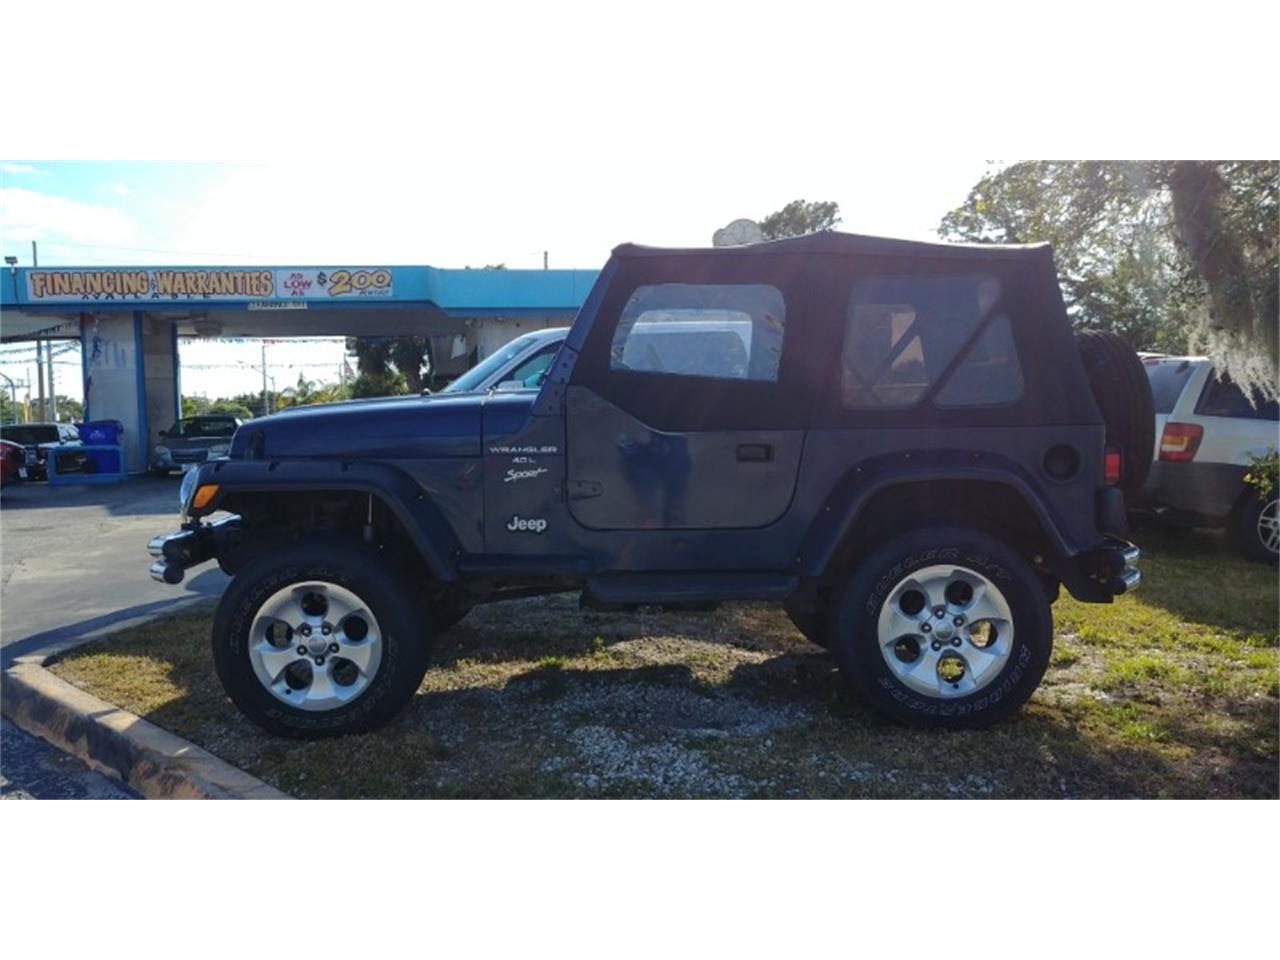 Large Picture of '00 Jeep Wrangler located in Florida - $9,250.00 Offered by Seth Lee Auto Sales - PT3J